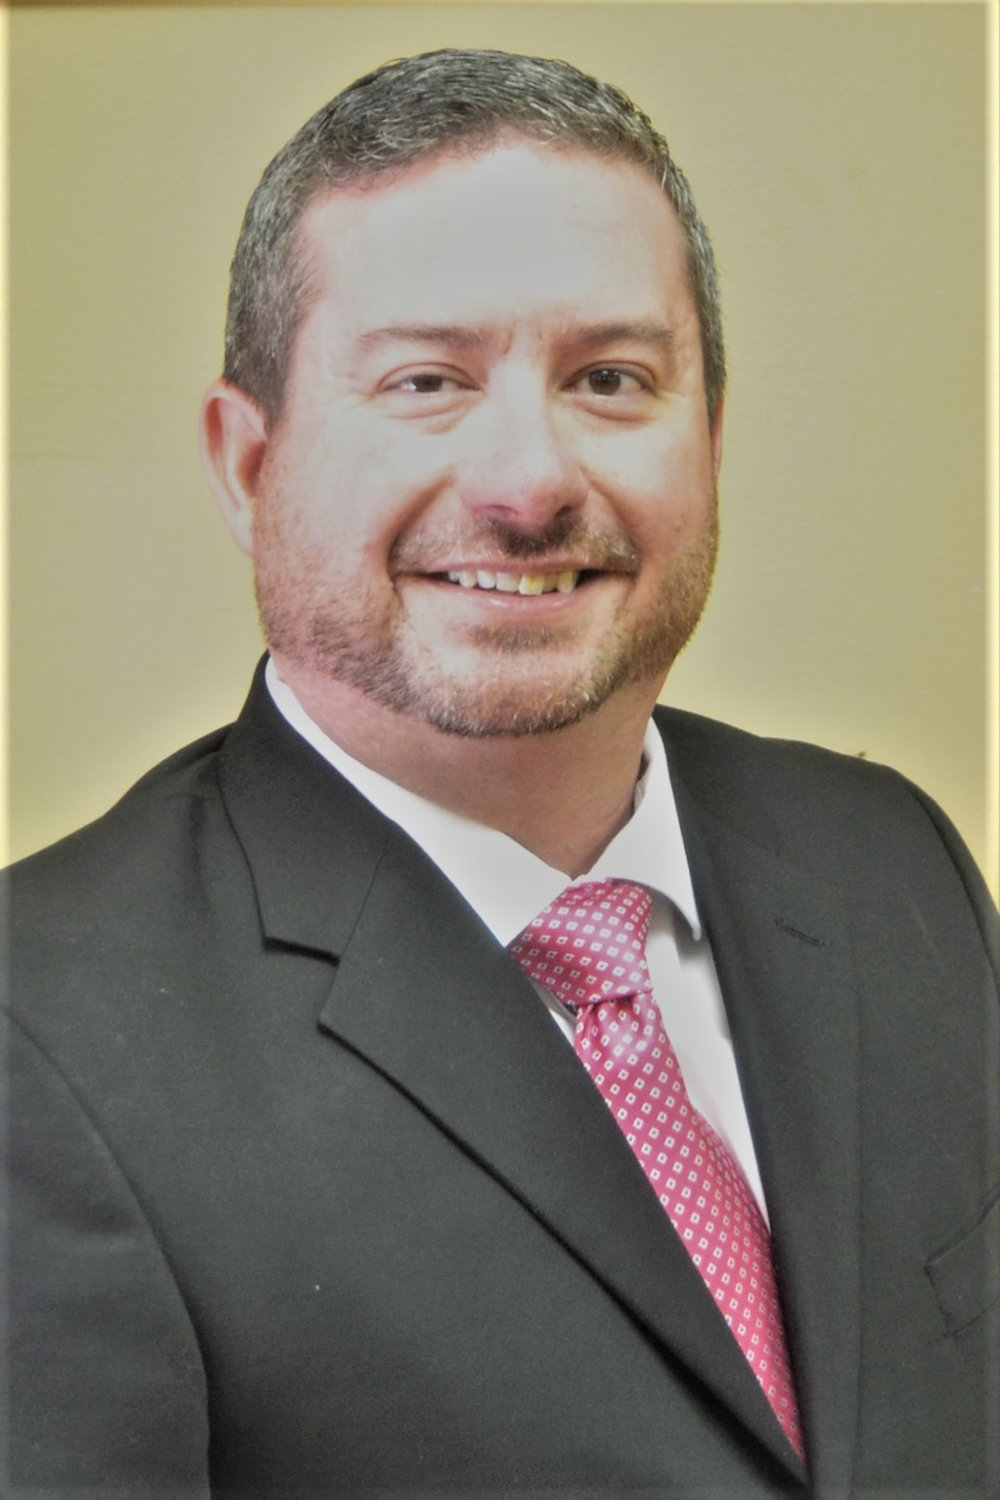 mayor pro tem     greg lewellen  Mayor Pro Tem Greg Lewellen is a long time resident of Friona, Texas. He was elected into office in May of 2018 and is currently serving in year one of his two-year-term.